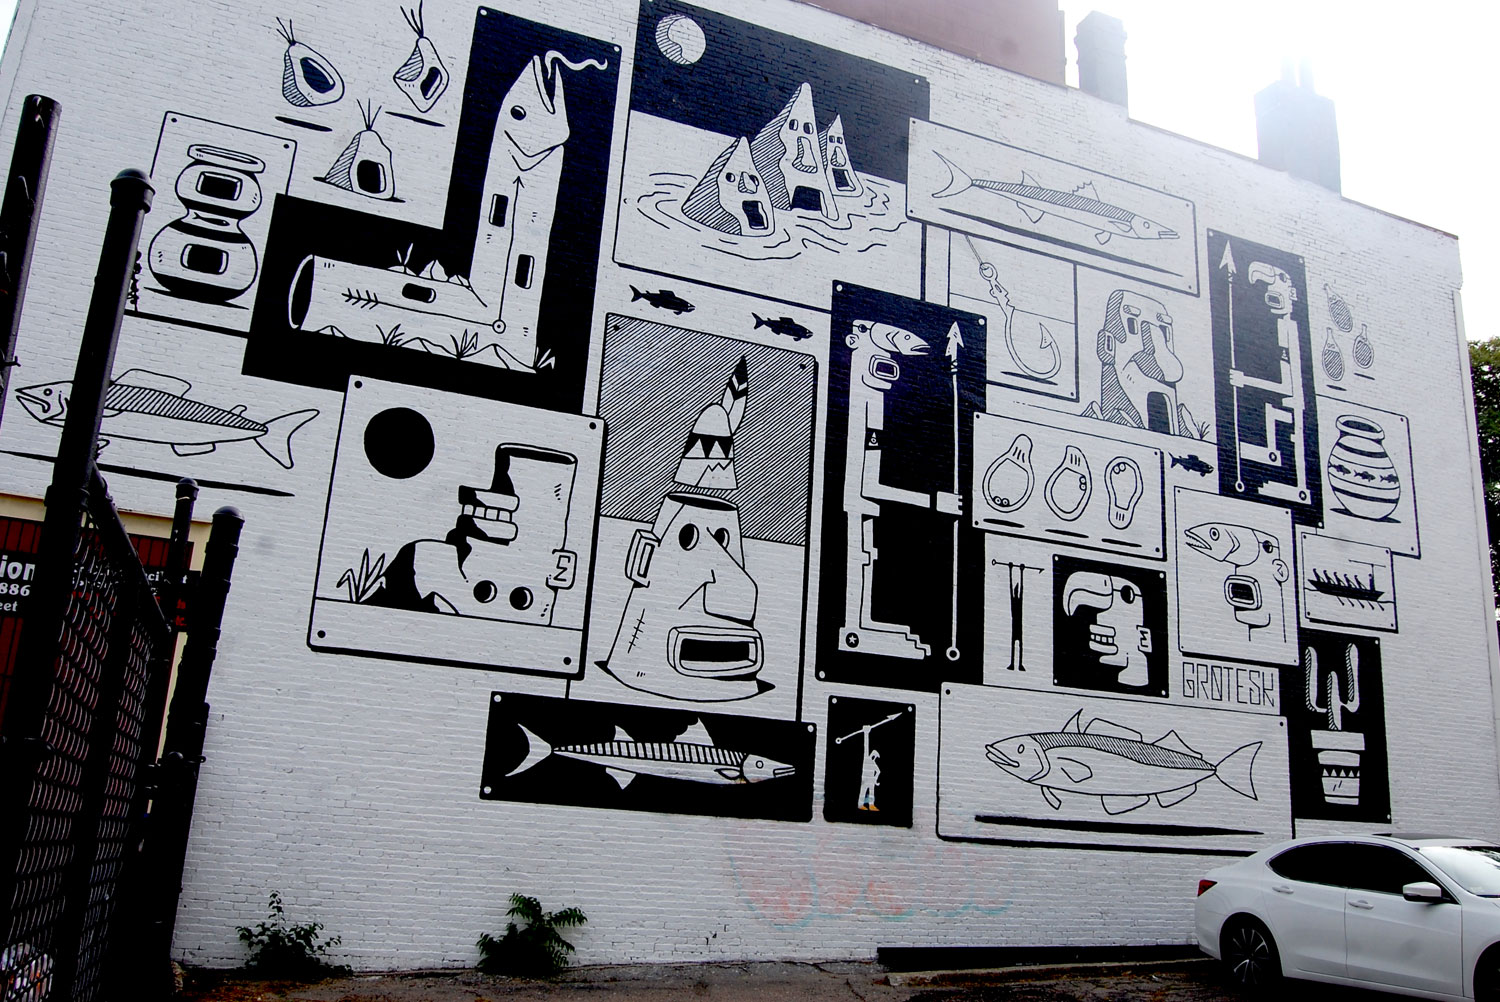 Mural by grotesk at 171 dudley st boston greg cook